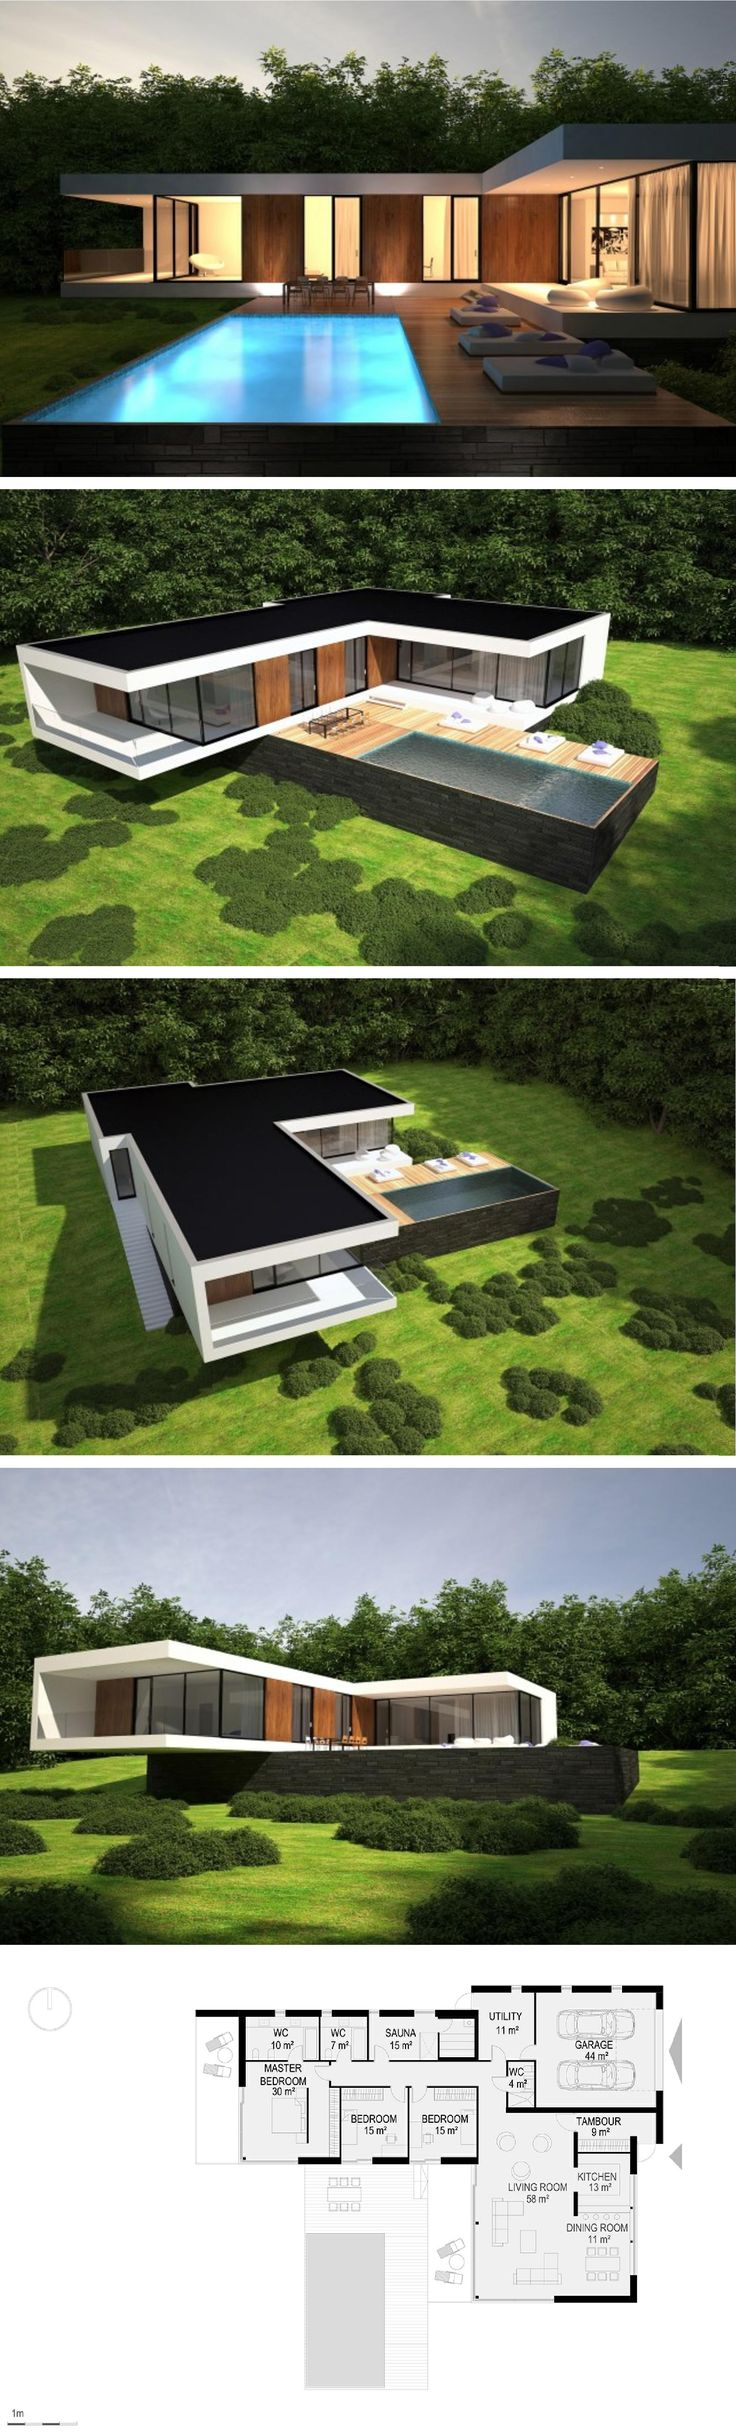 modern villa by NG architects. www.ngarchitects.lt